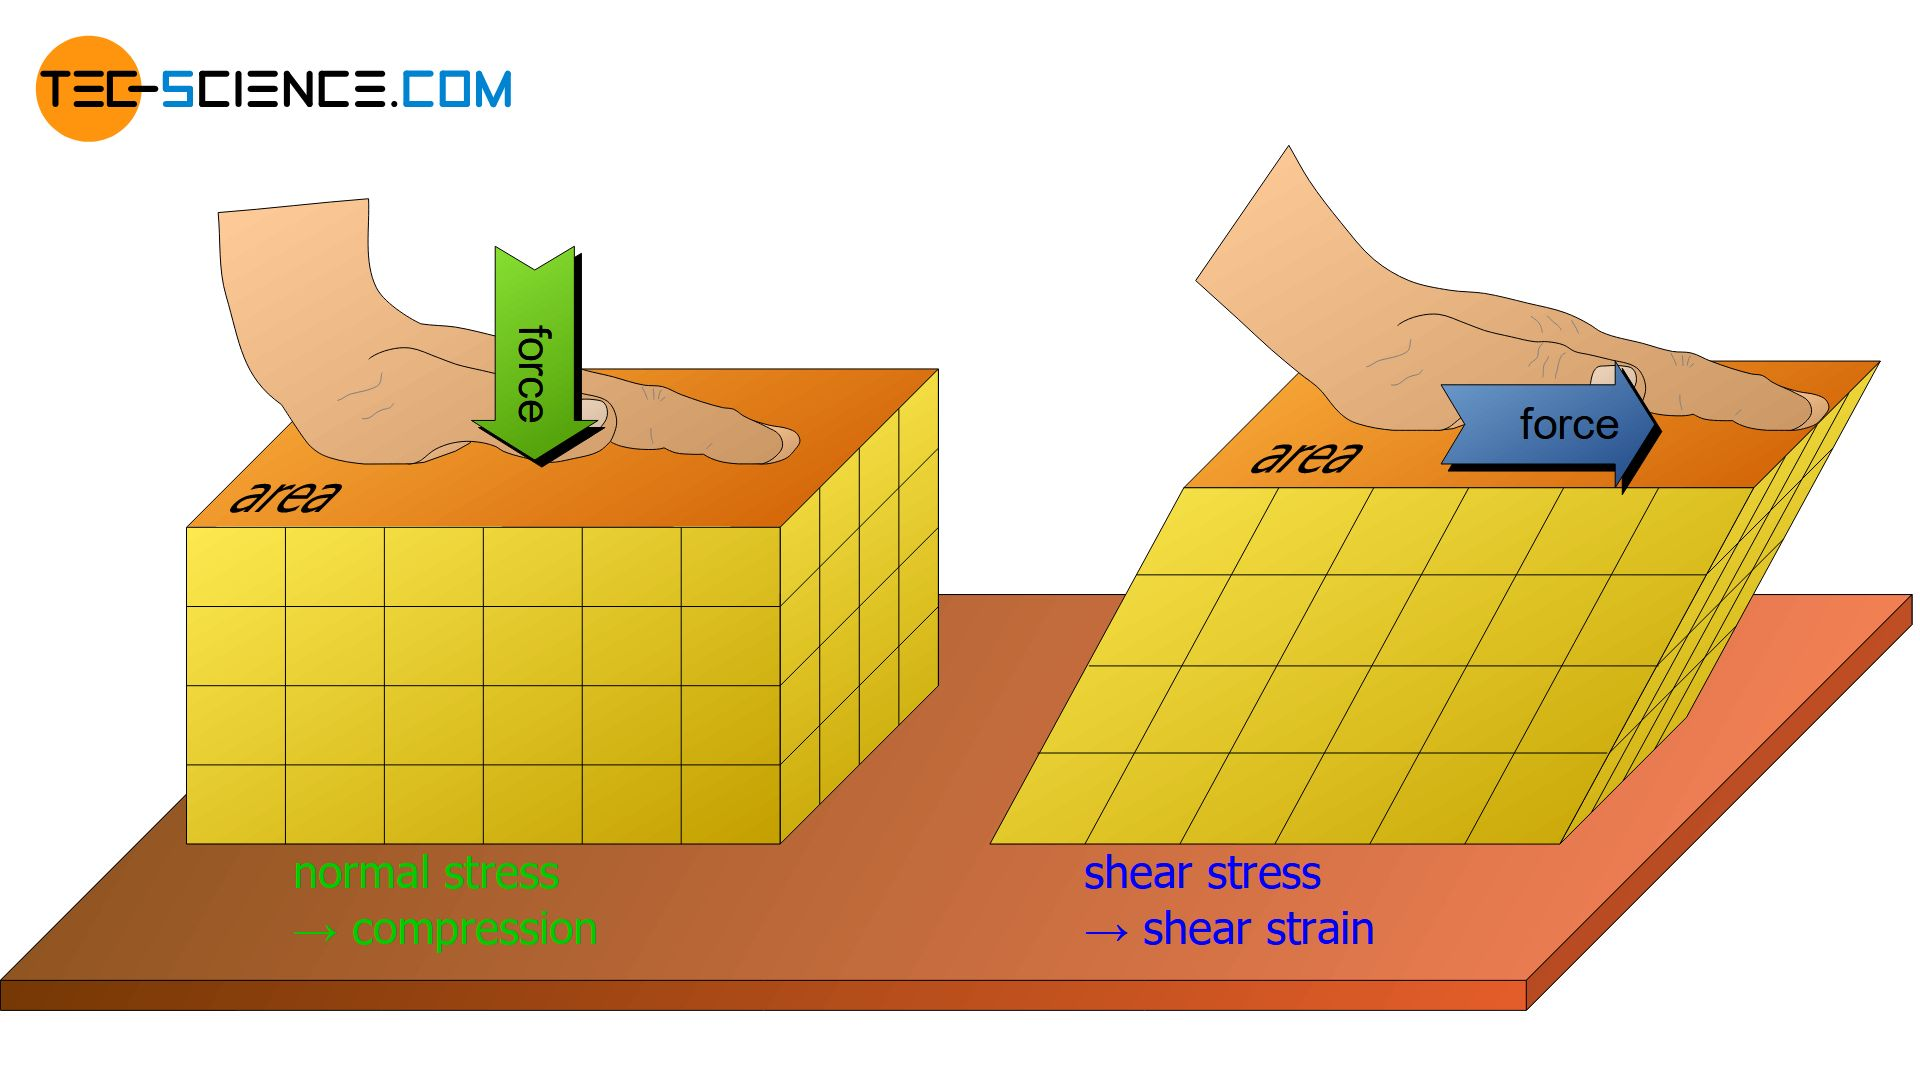 Normal stress and shear stress